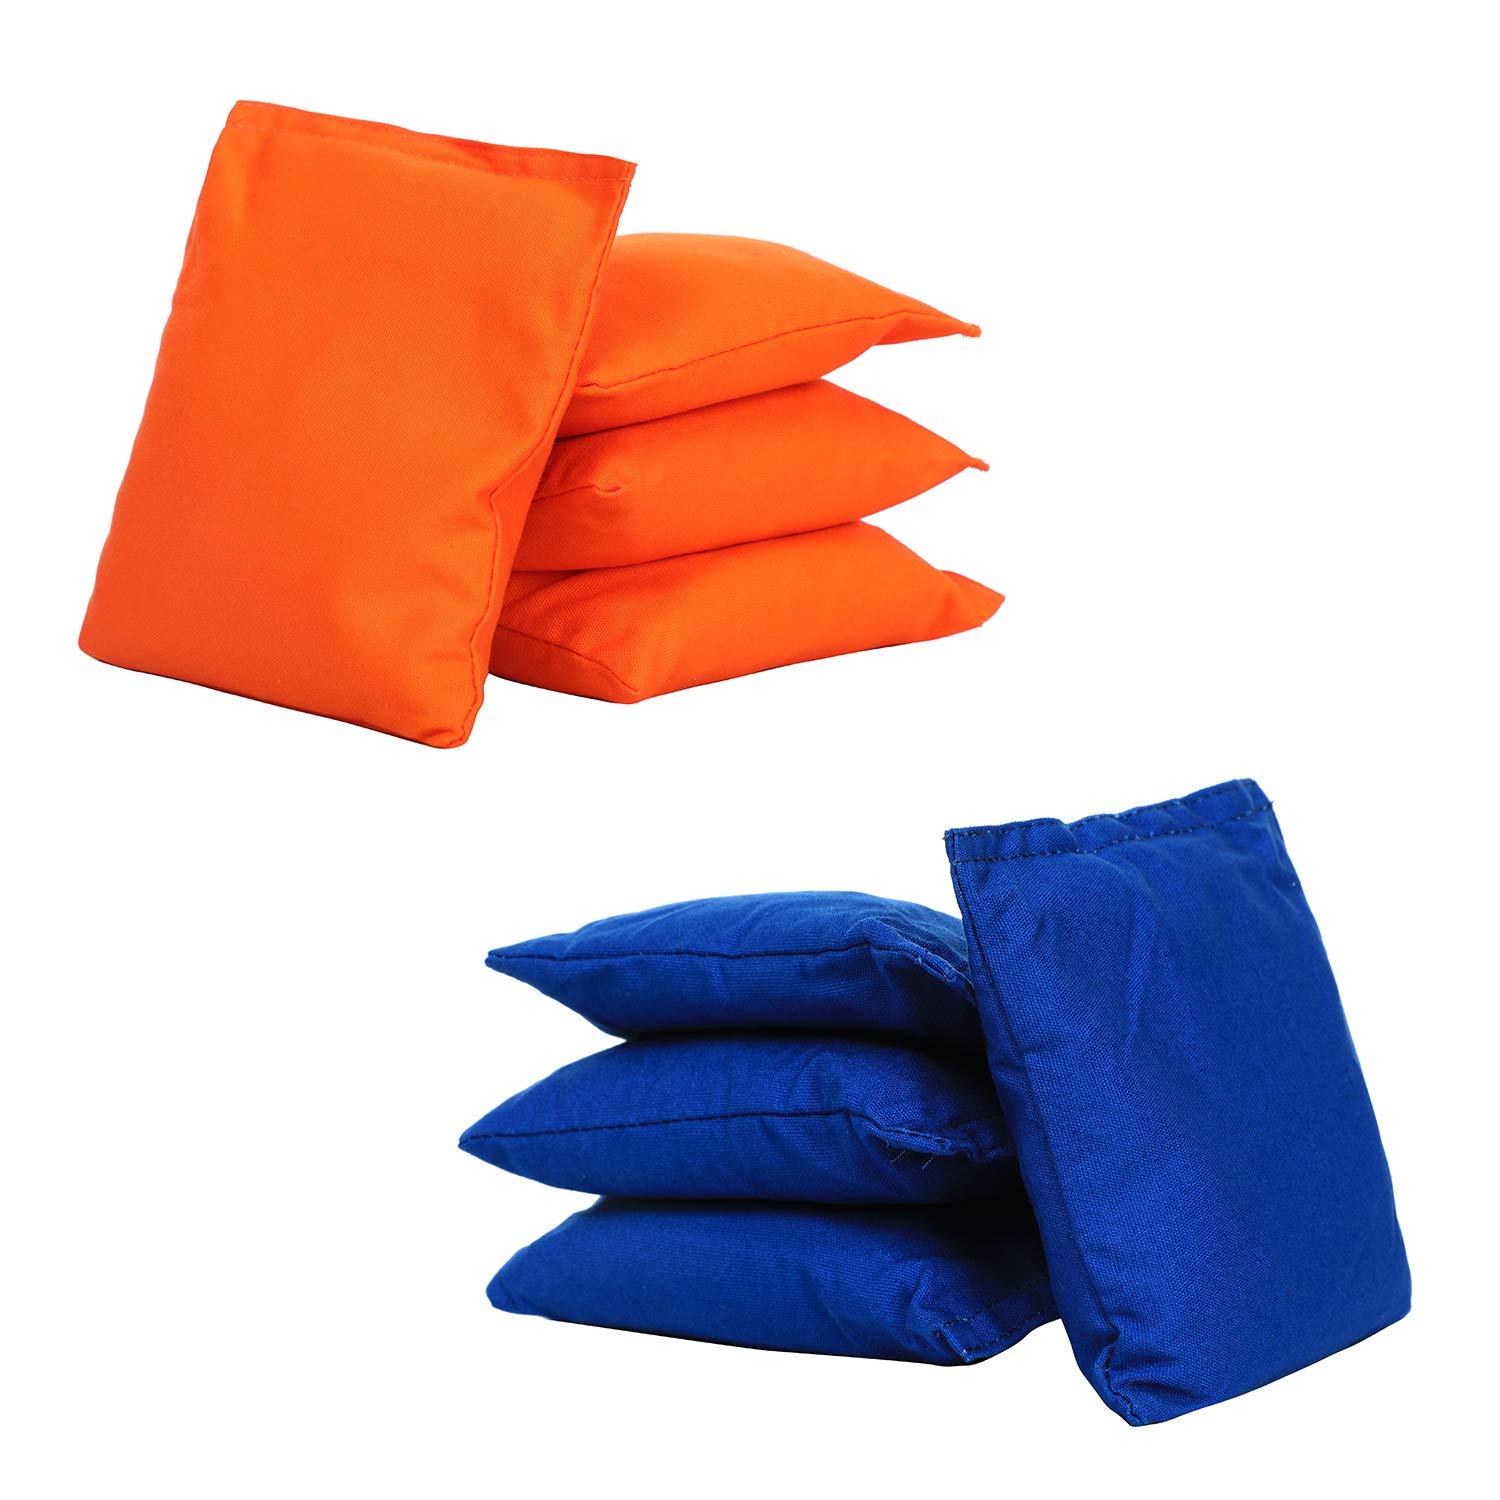 UKASE Cornhole Bean Bags Weather Resistant Double Stitched Canvas Sets of 8 Blue and Orange